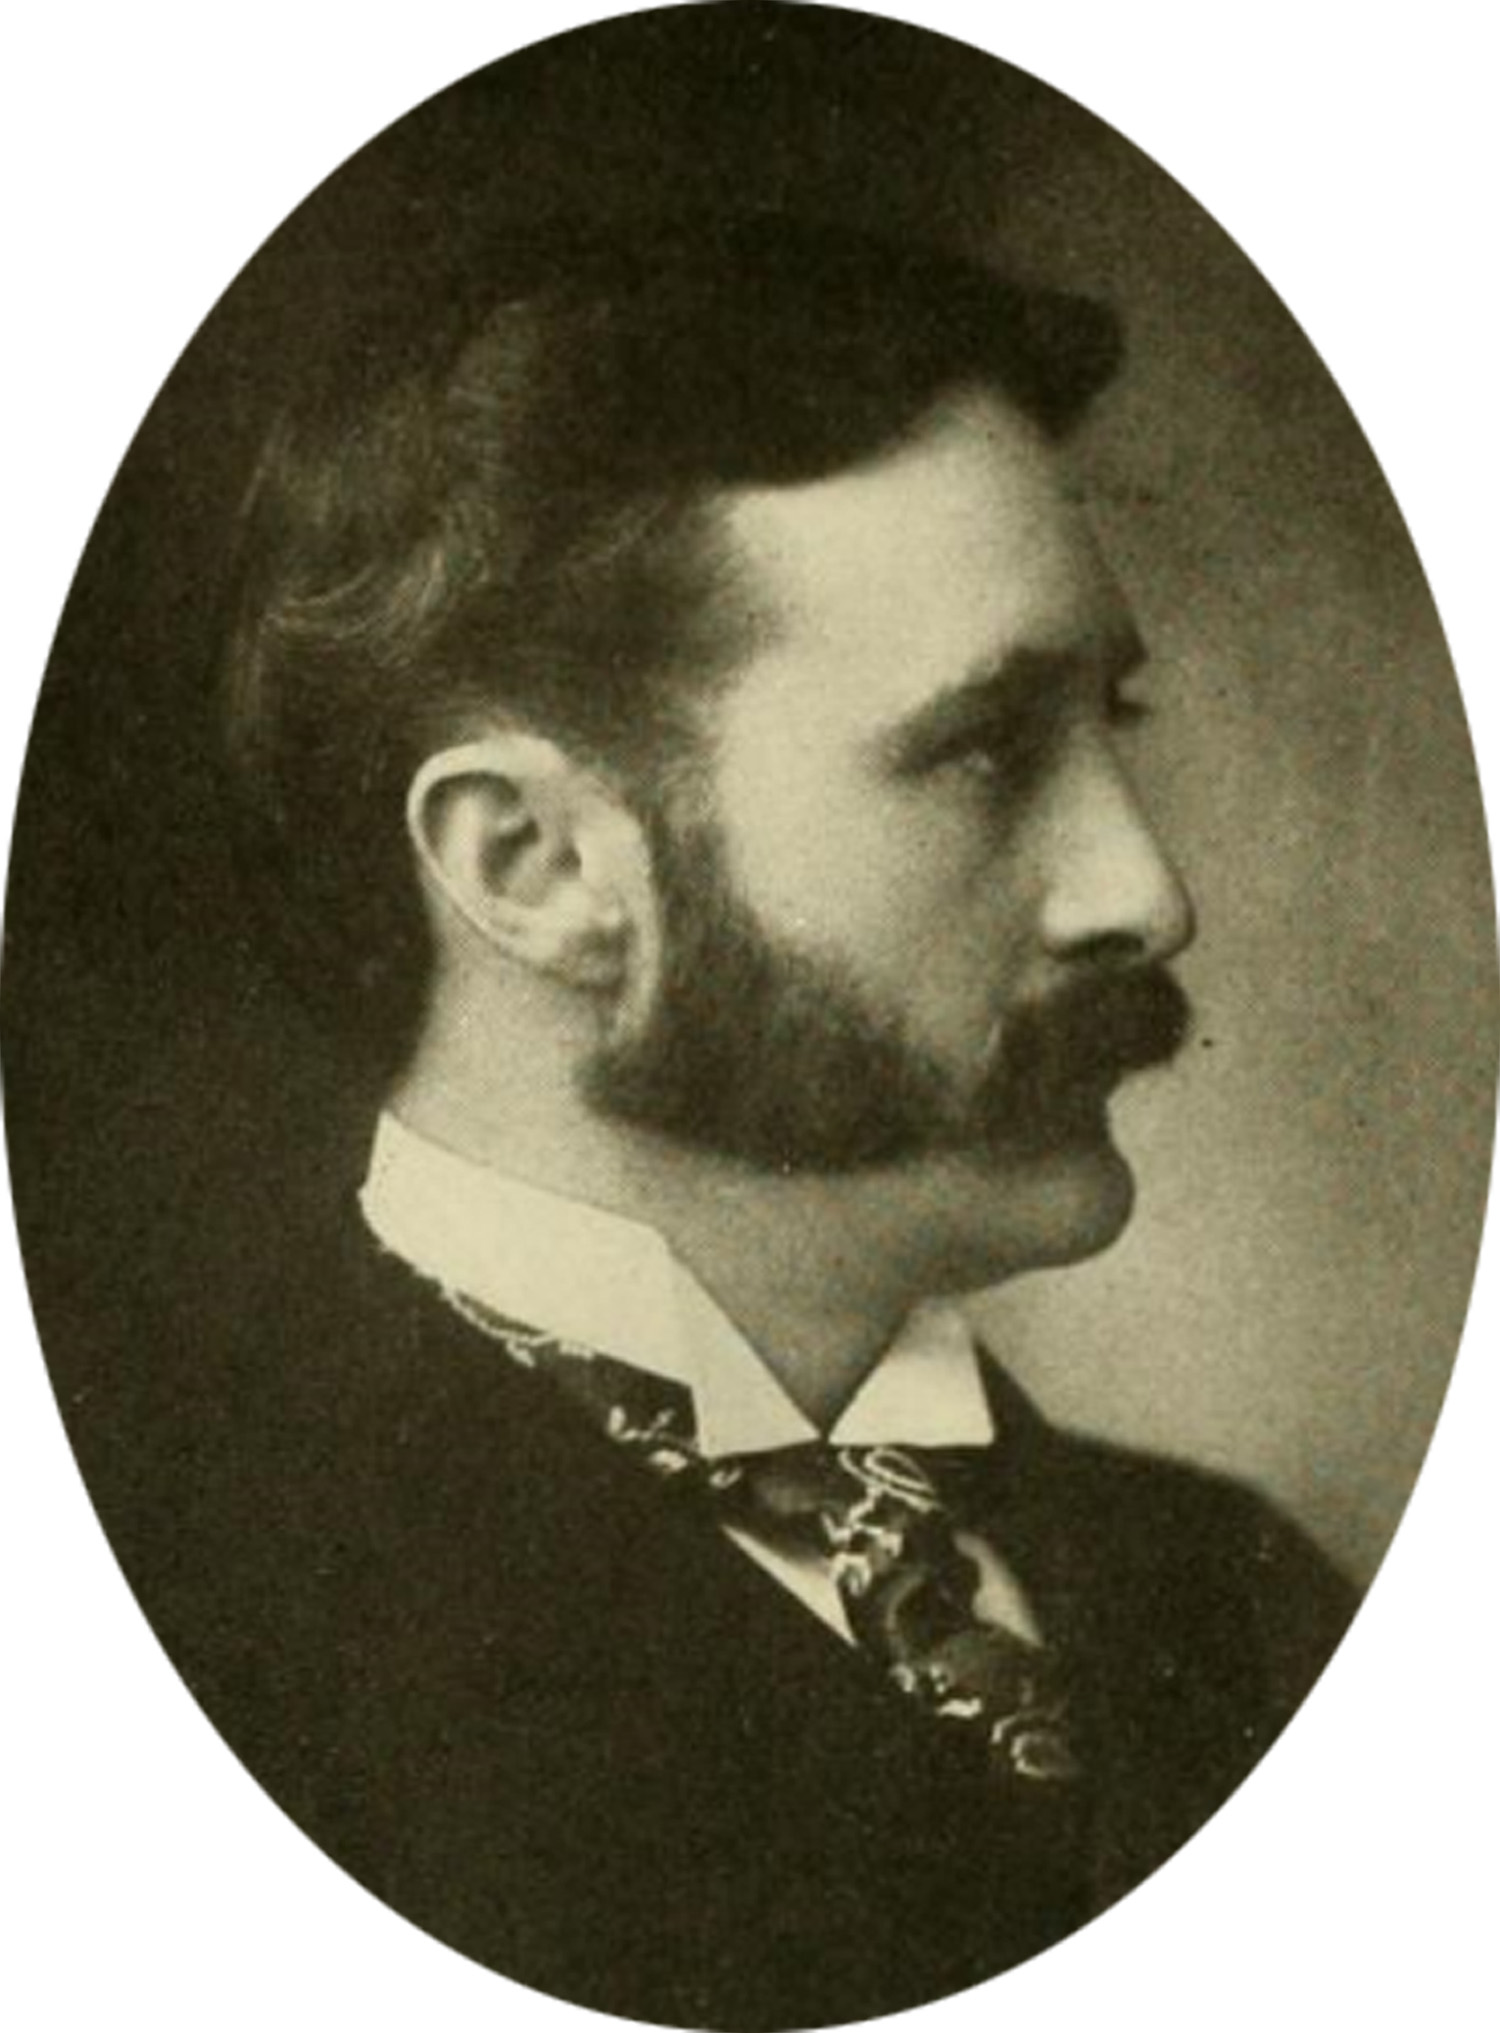 Harry_Gordon_Selfridge_circa_1880_2.jpg